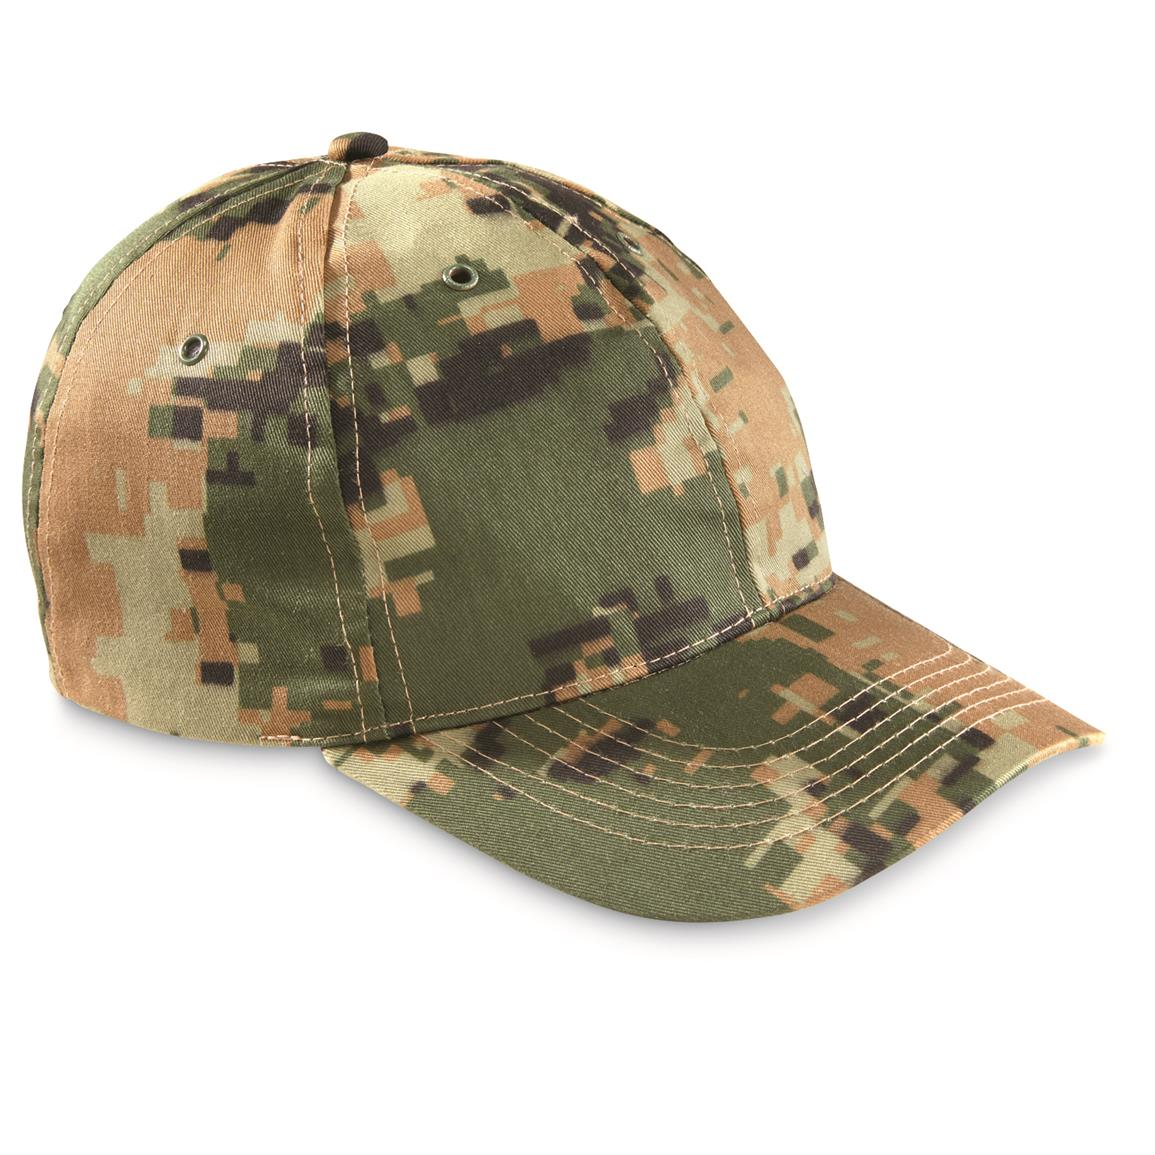 Jordanian Military Surplus Ball Caps, 2 Pack, Woodland Camo